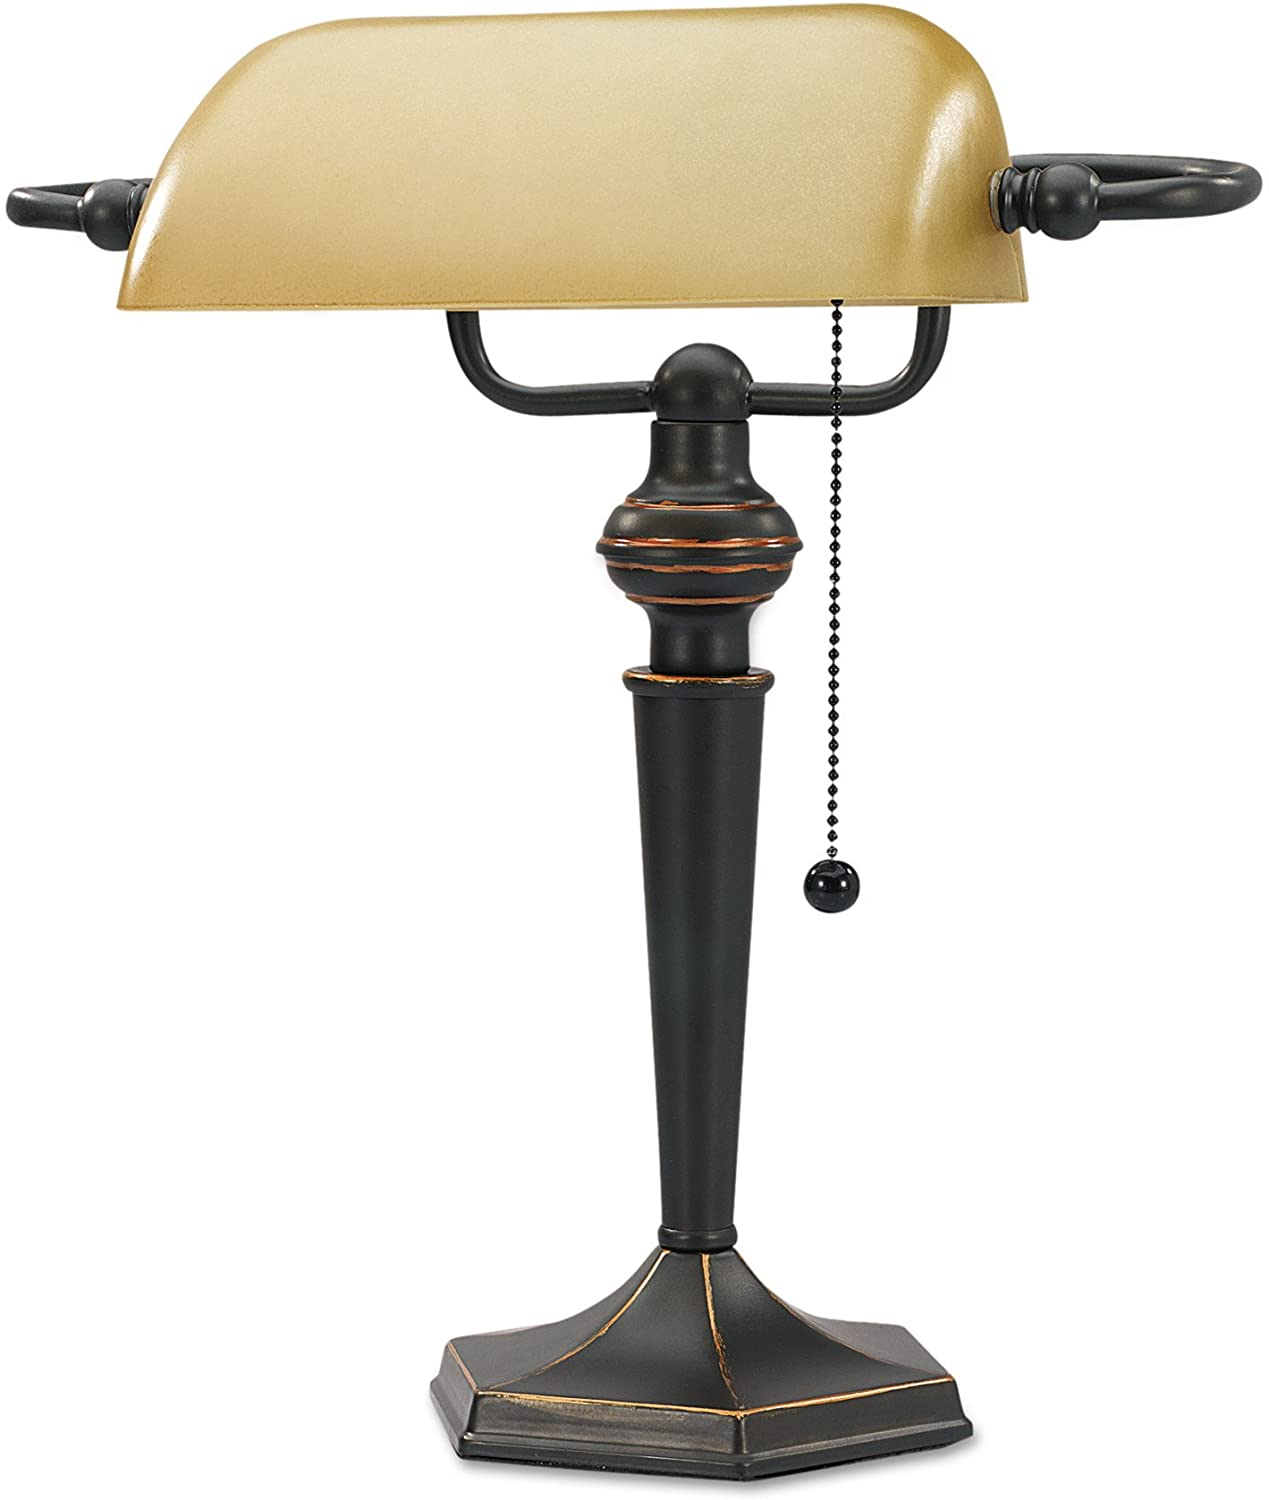 Alera Lmp537bz Traditional Banker S Lamp 16 High Amber Shade With Antique Bronze Base Amazon Ca Home Kitchen